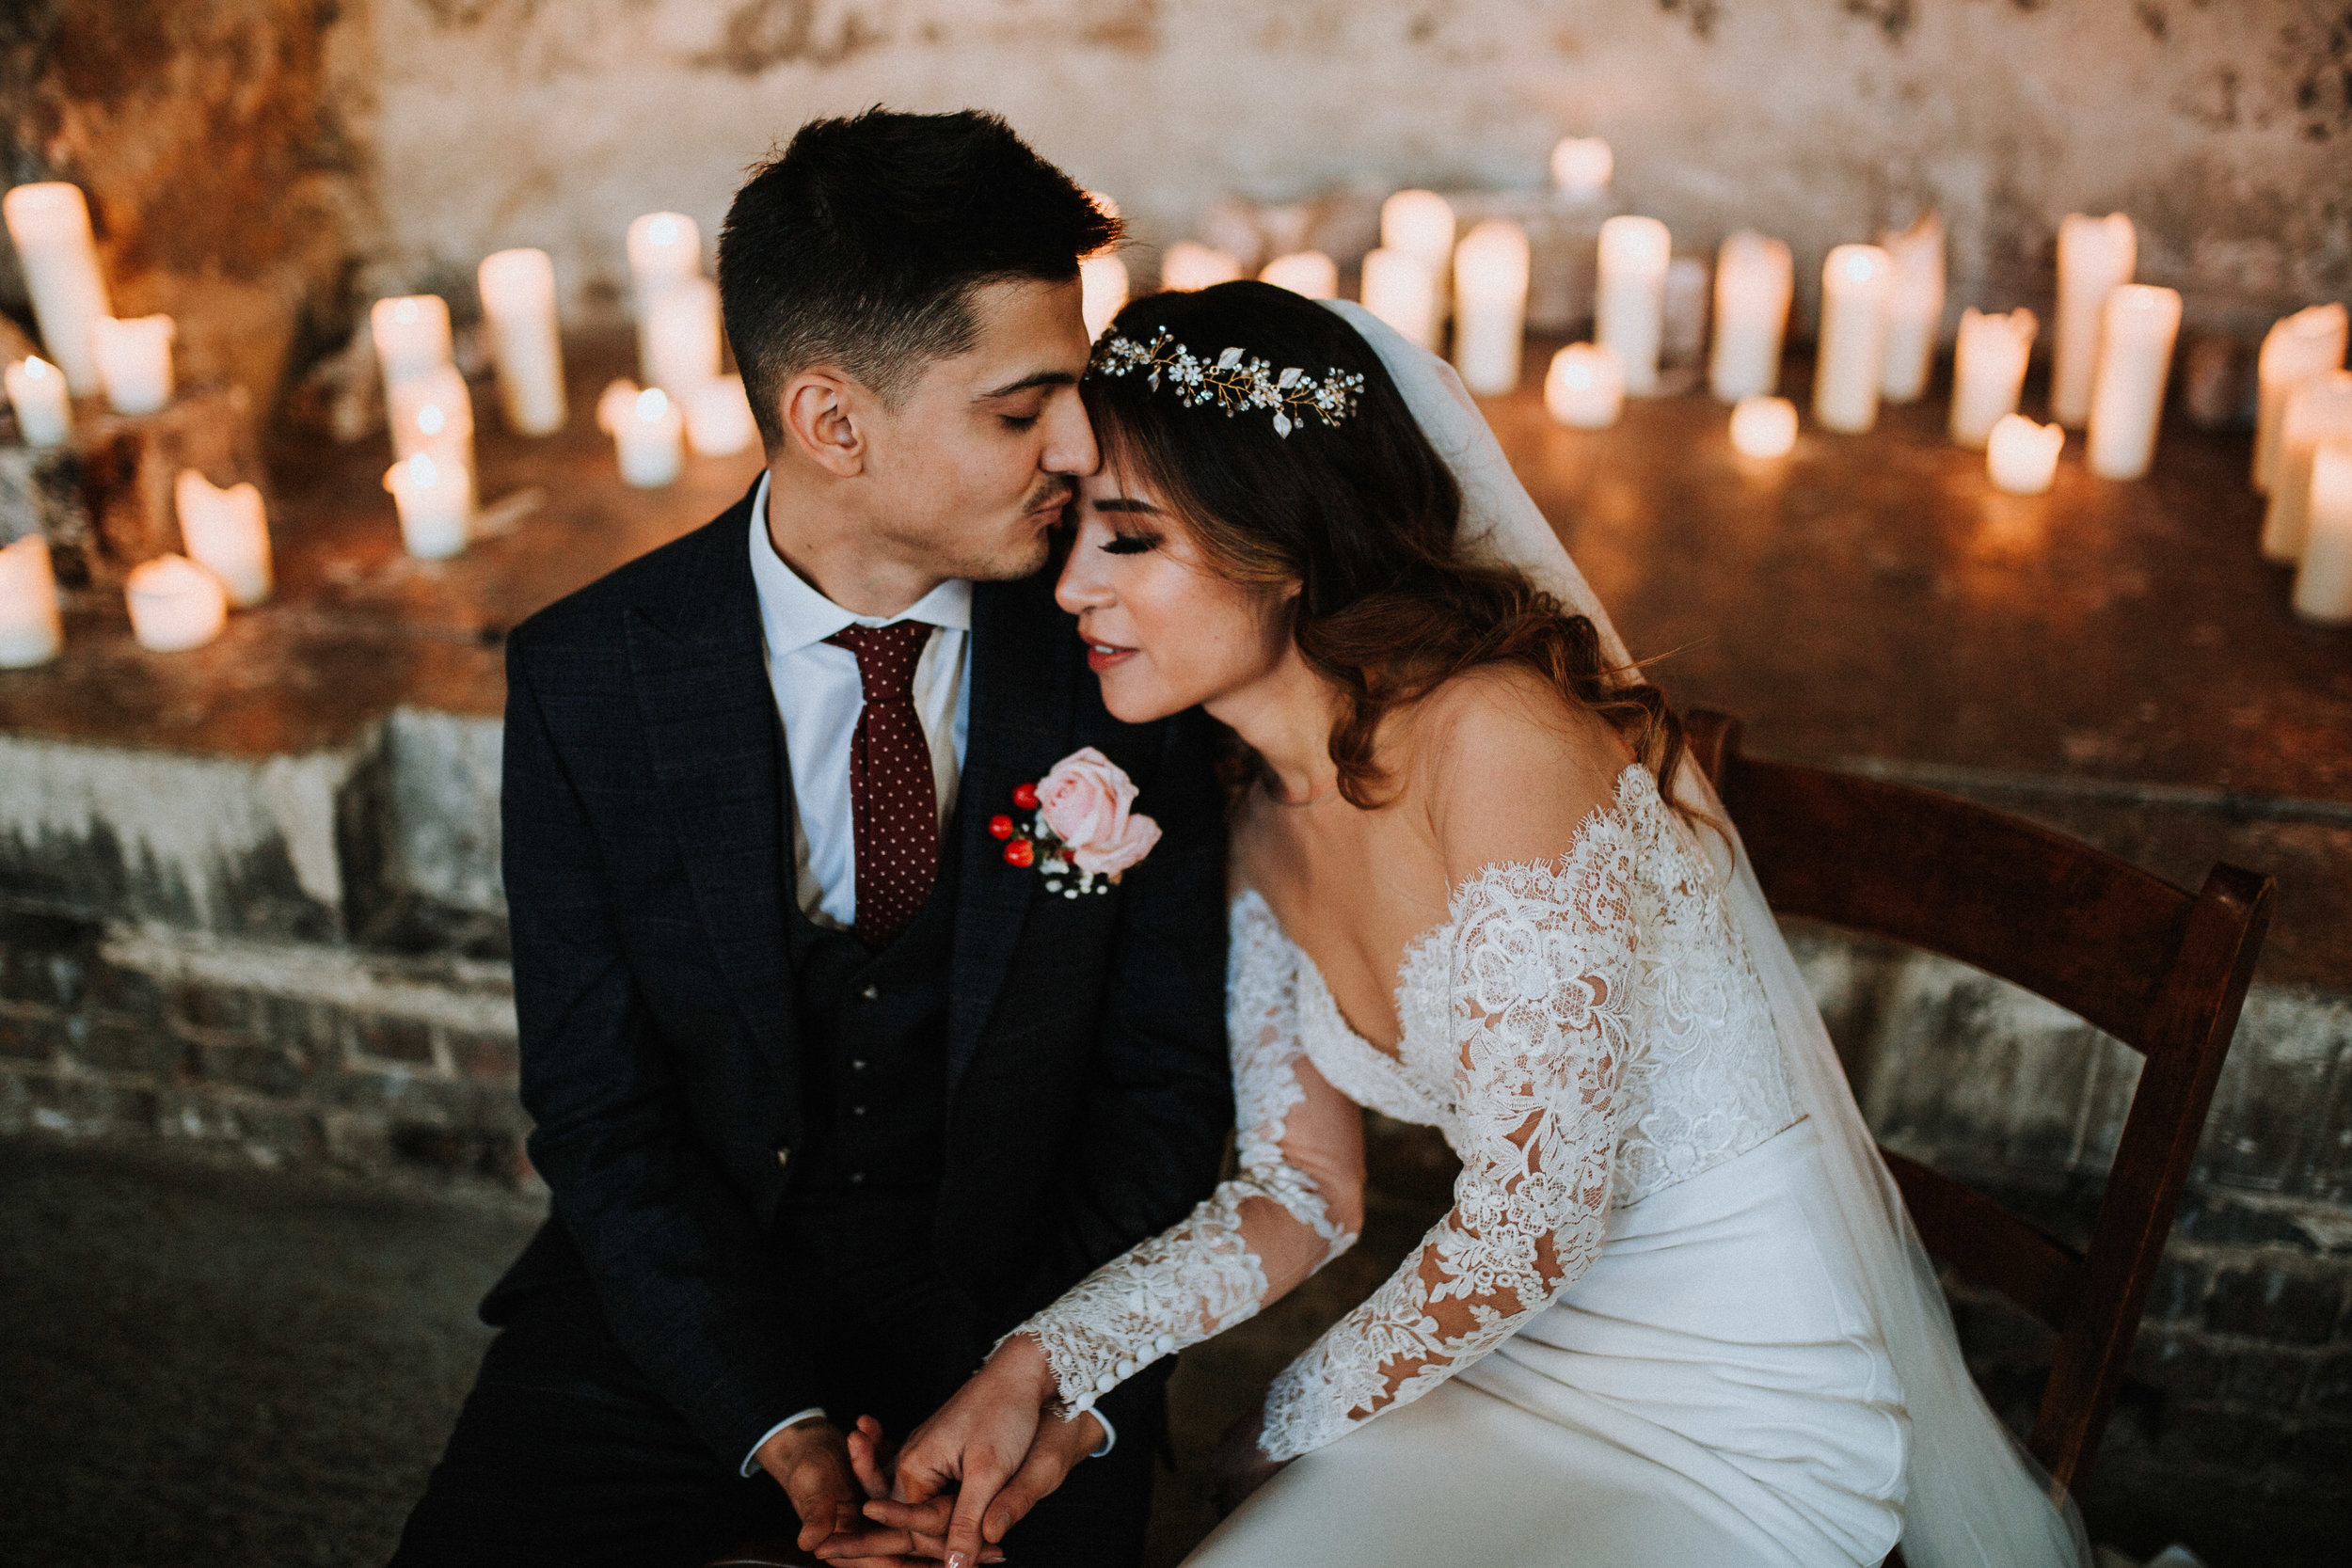 Joy + Will, Asylum Chapel - We are delighted with our photos and videos! They're so beautiful. Thank you so much for helping us to capture our day and allowing us to relive it! We will cherish them always.